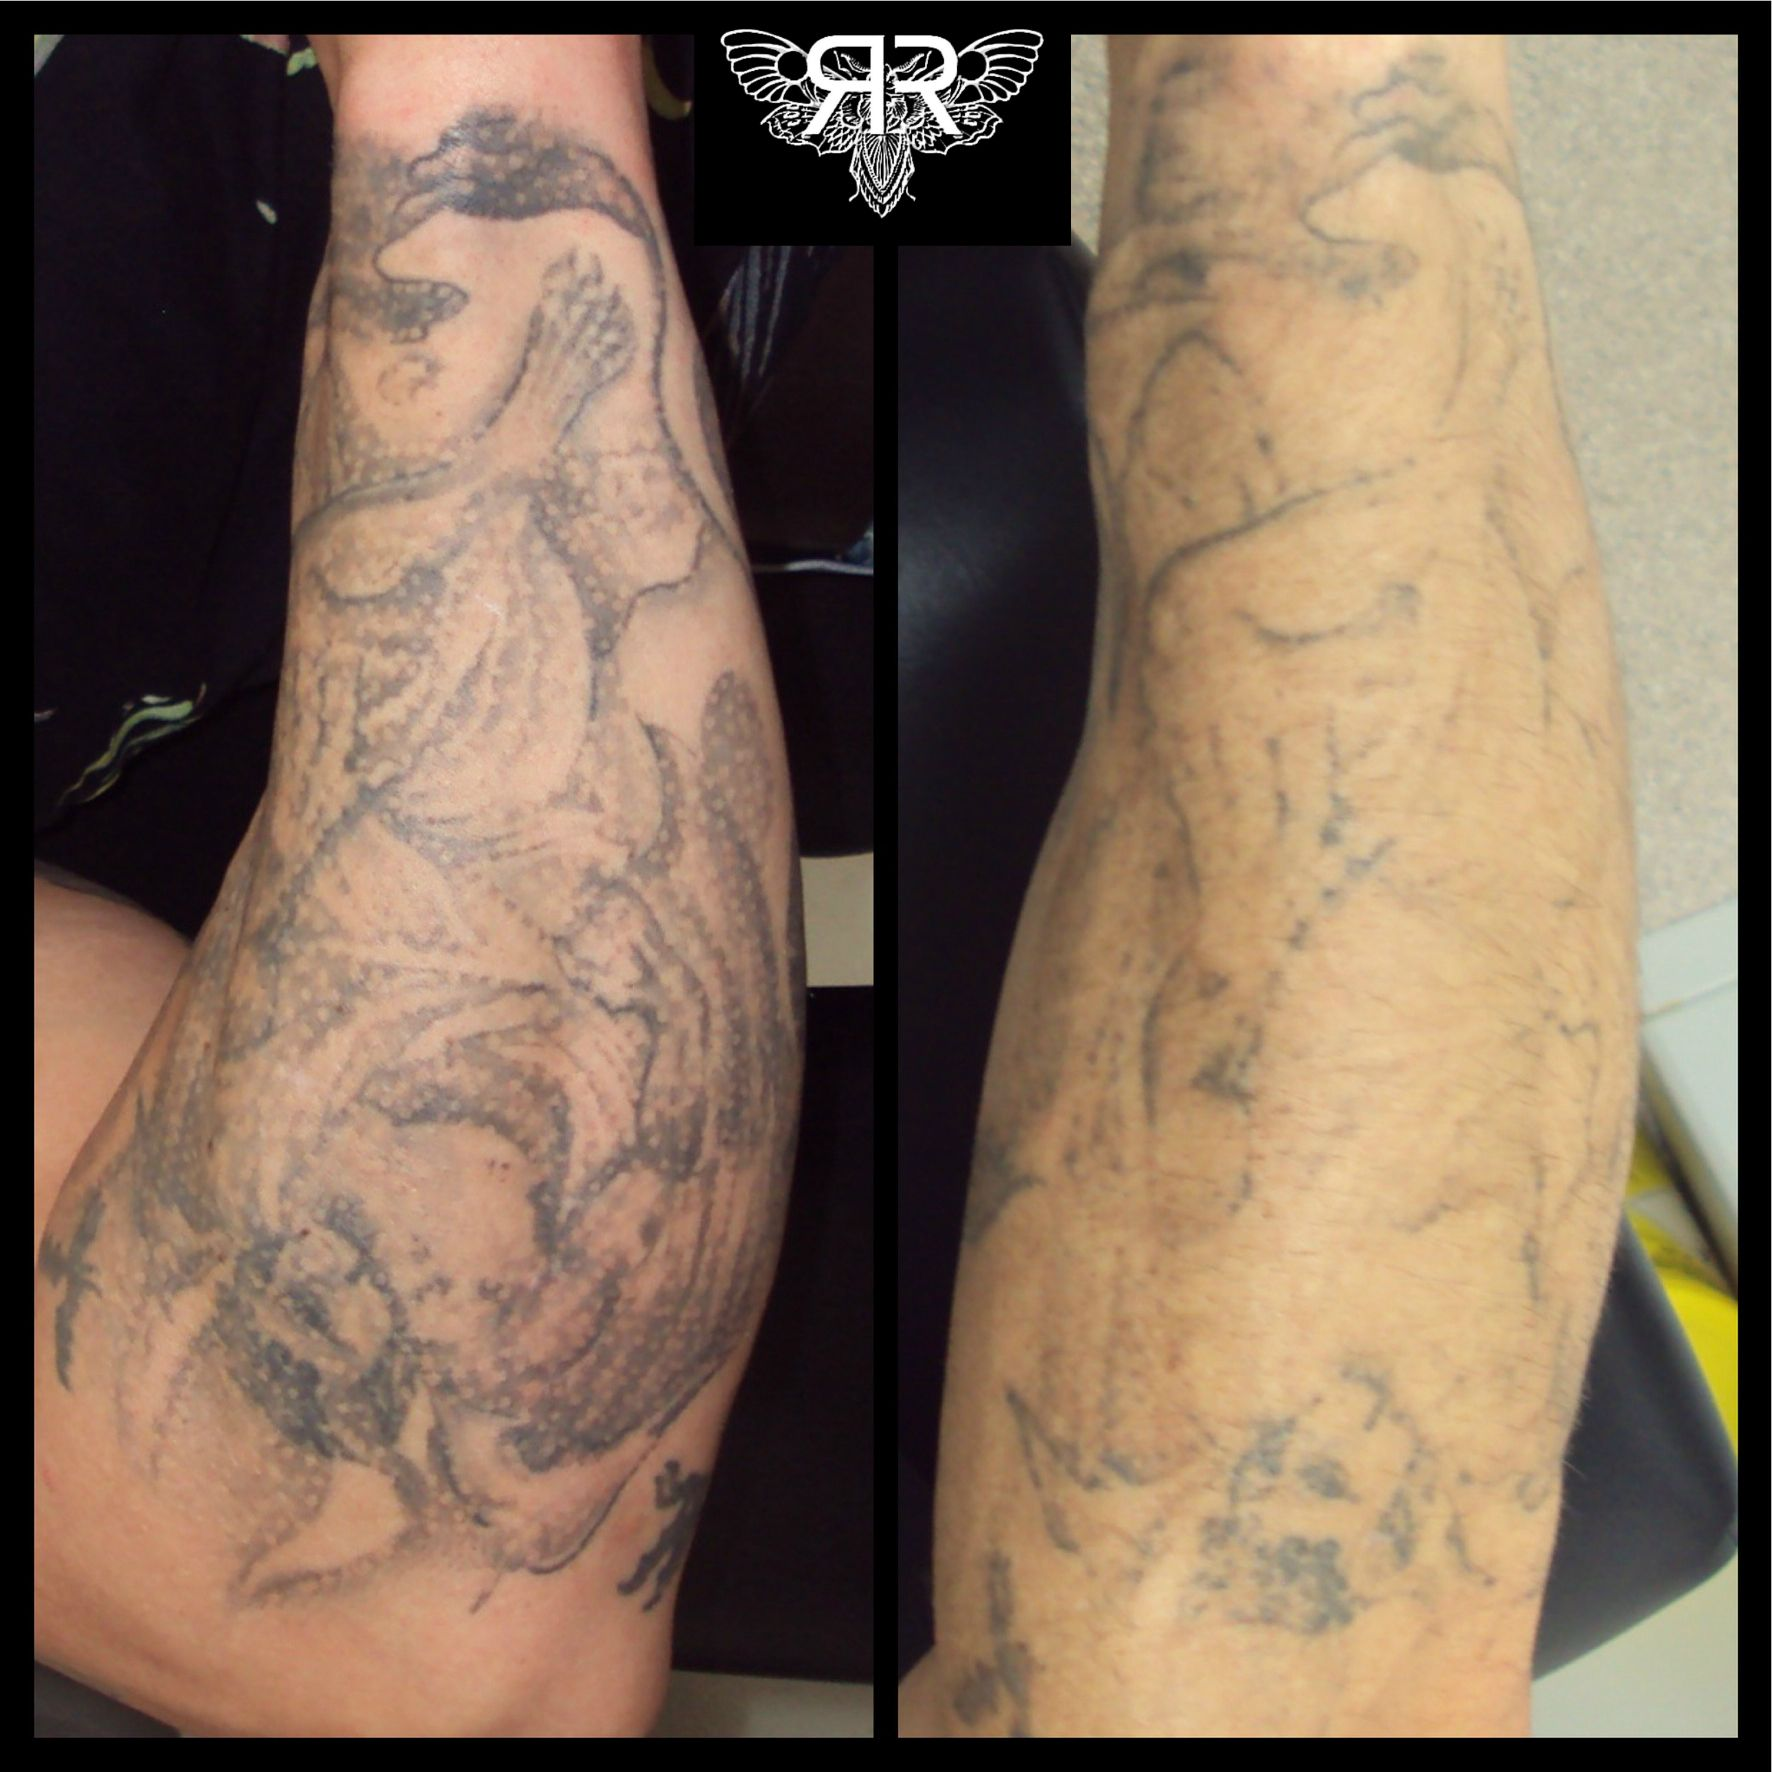 X1 Picosure Session For A Cover Up Tattoo Removal Cost Laser Tattoo Removal Tattoo Removal